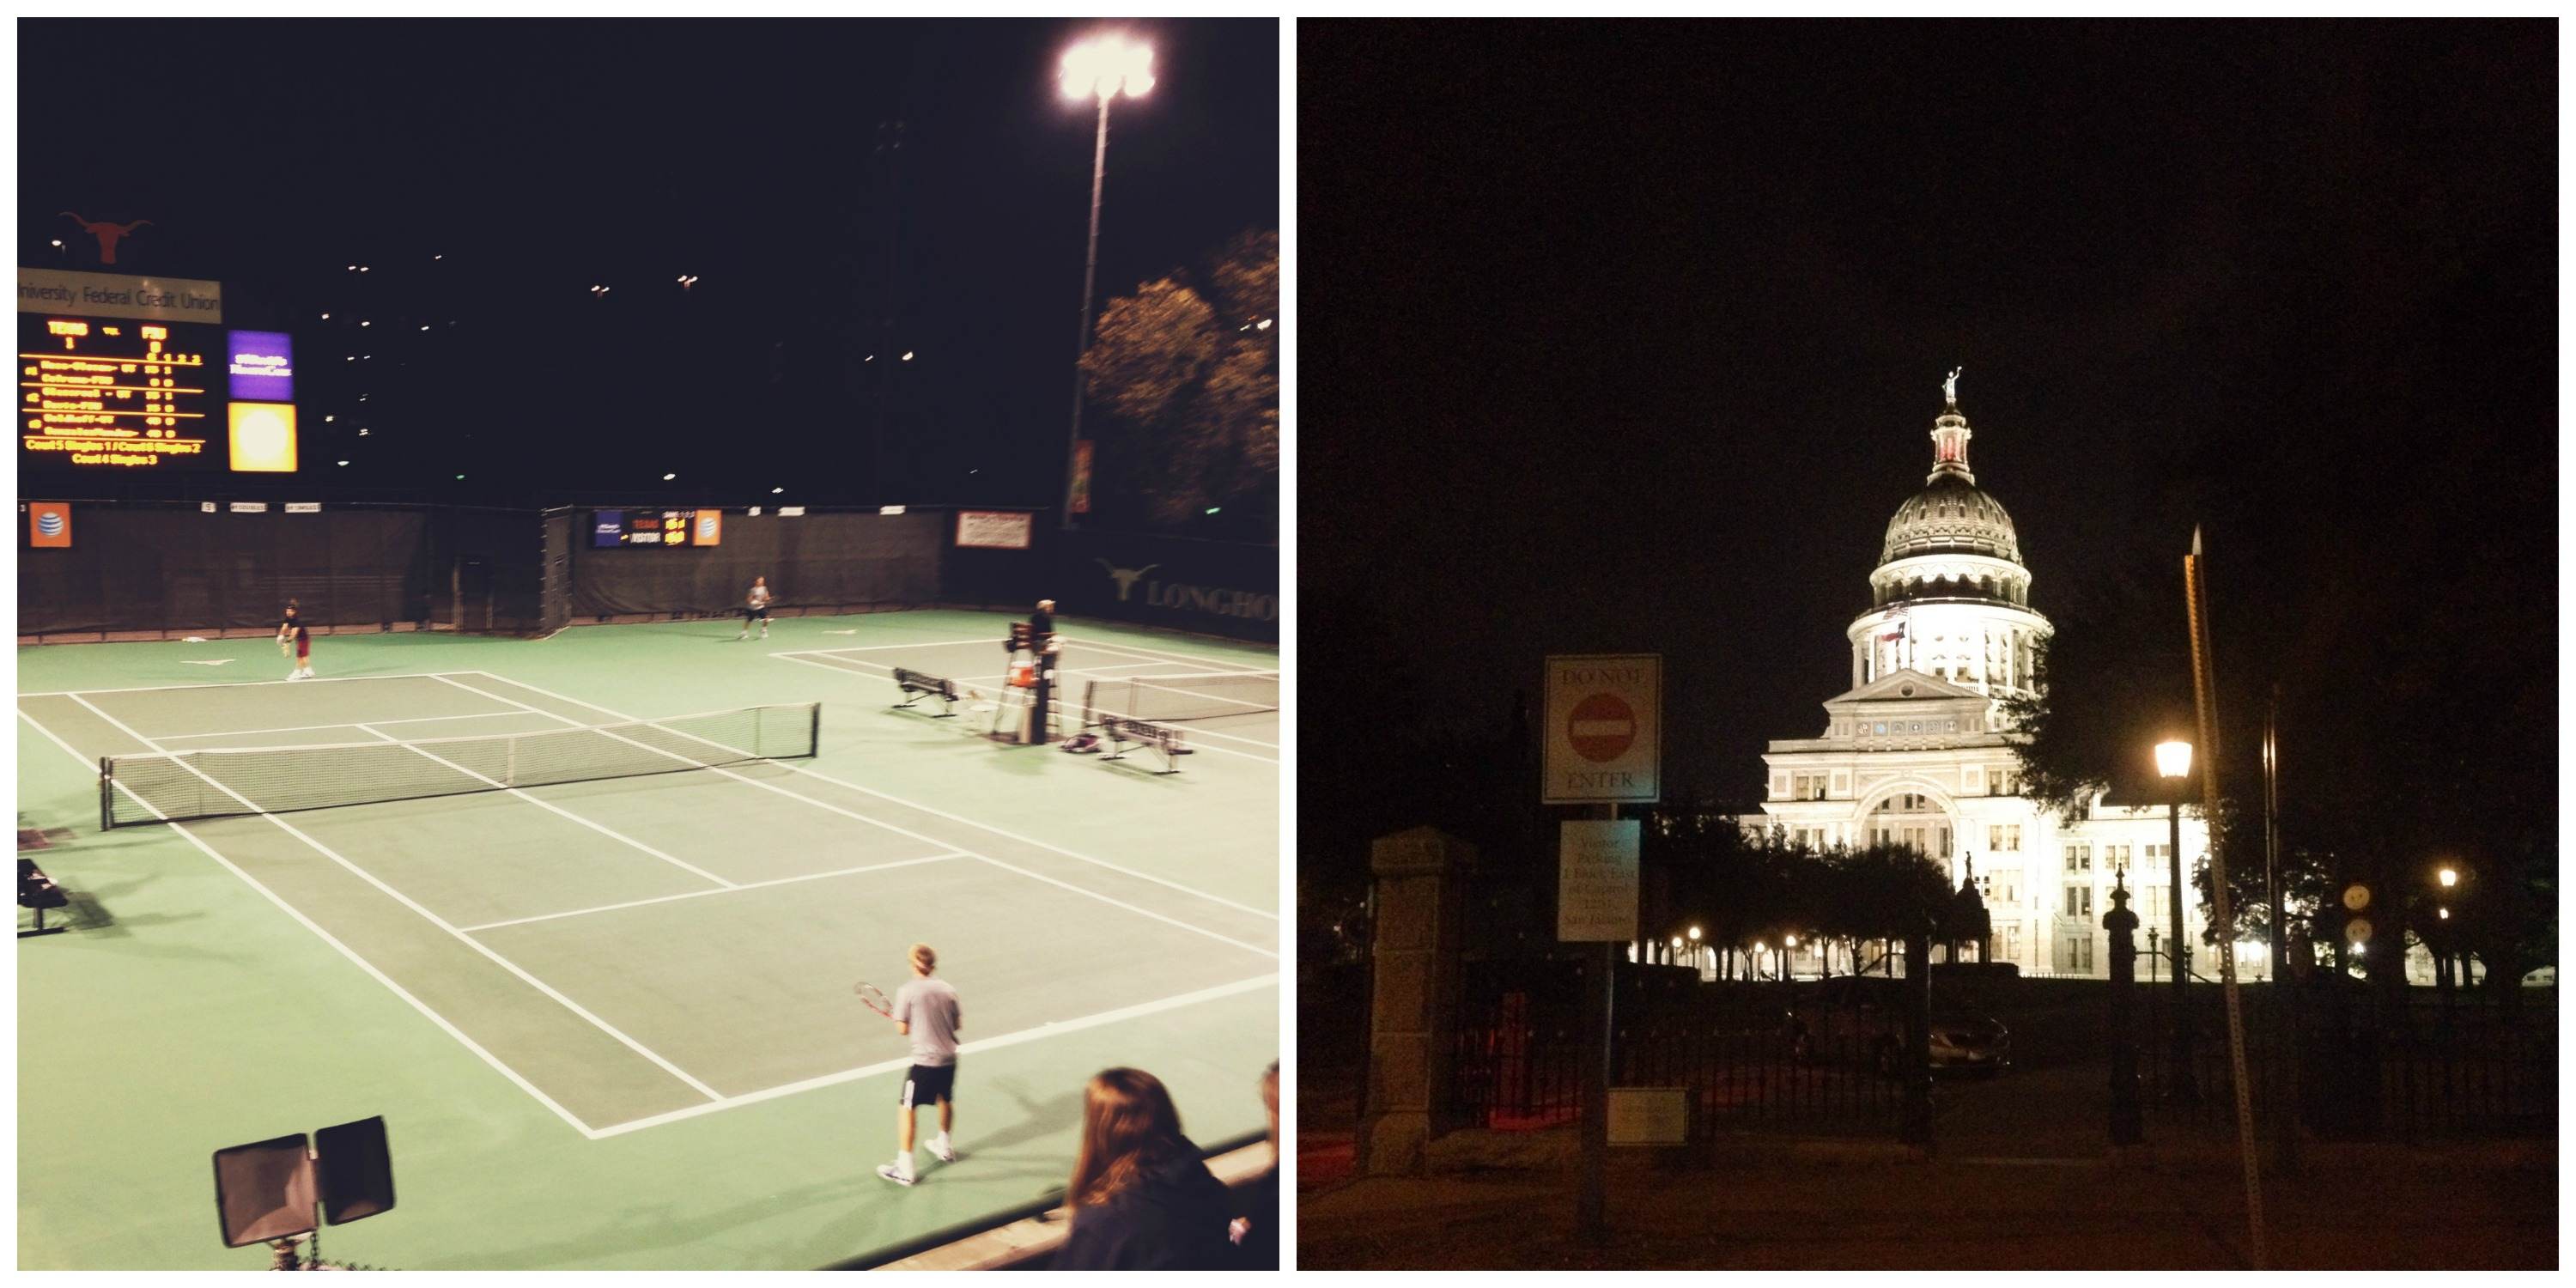 Tennis + The Capitol